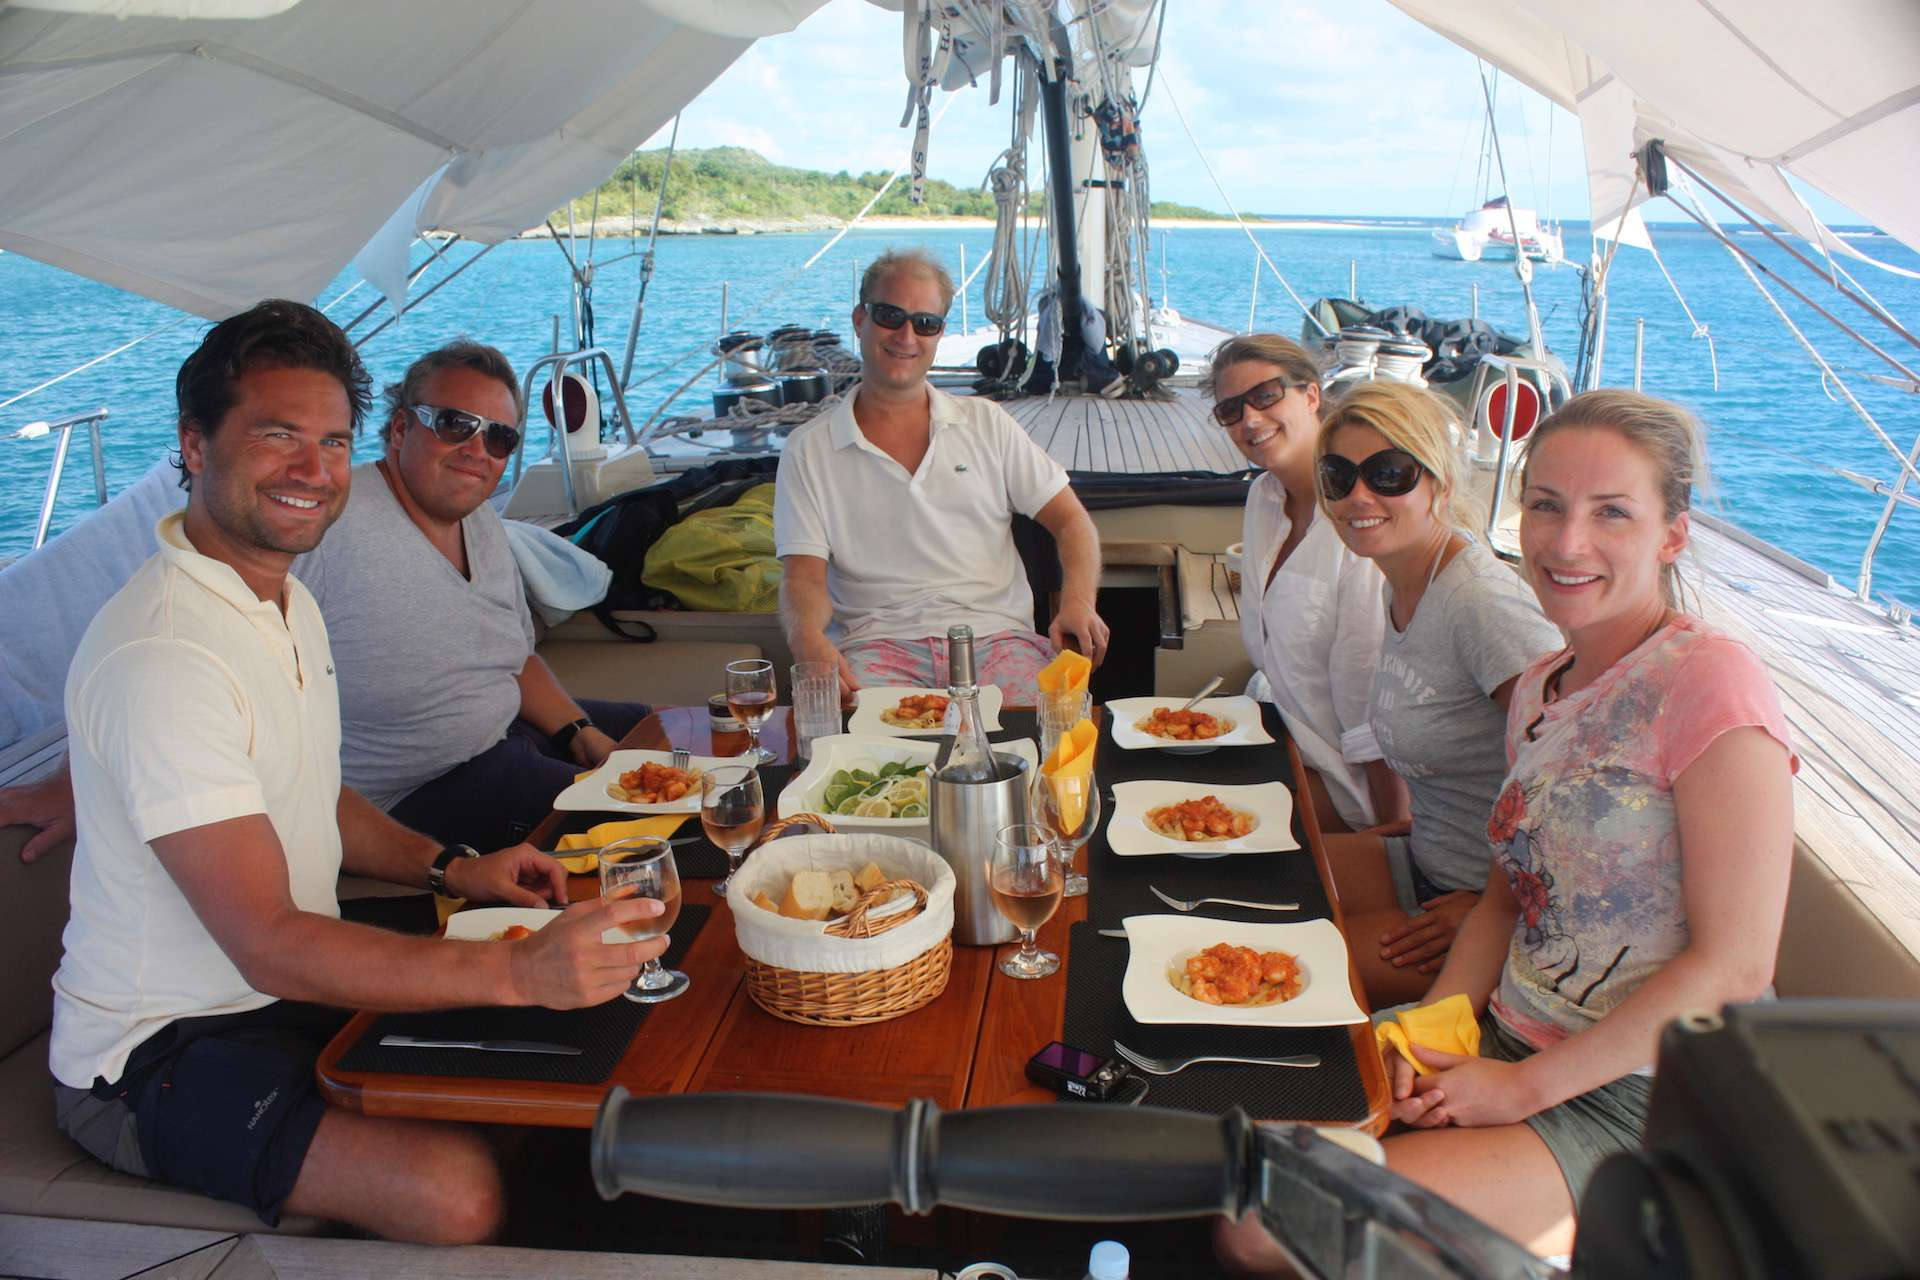 Lunch On Deck beneath the Awning